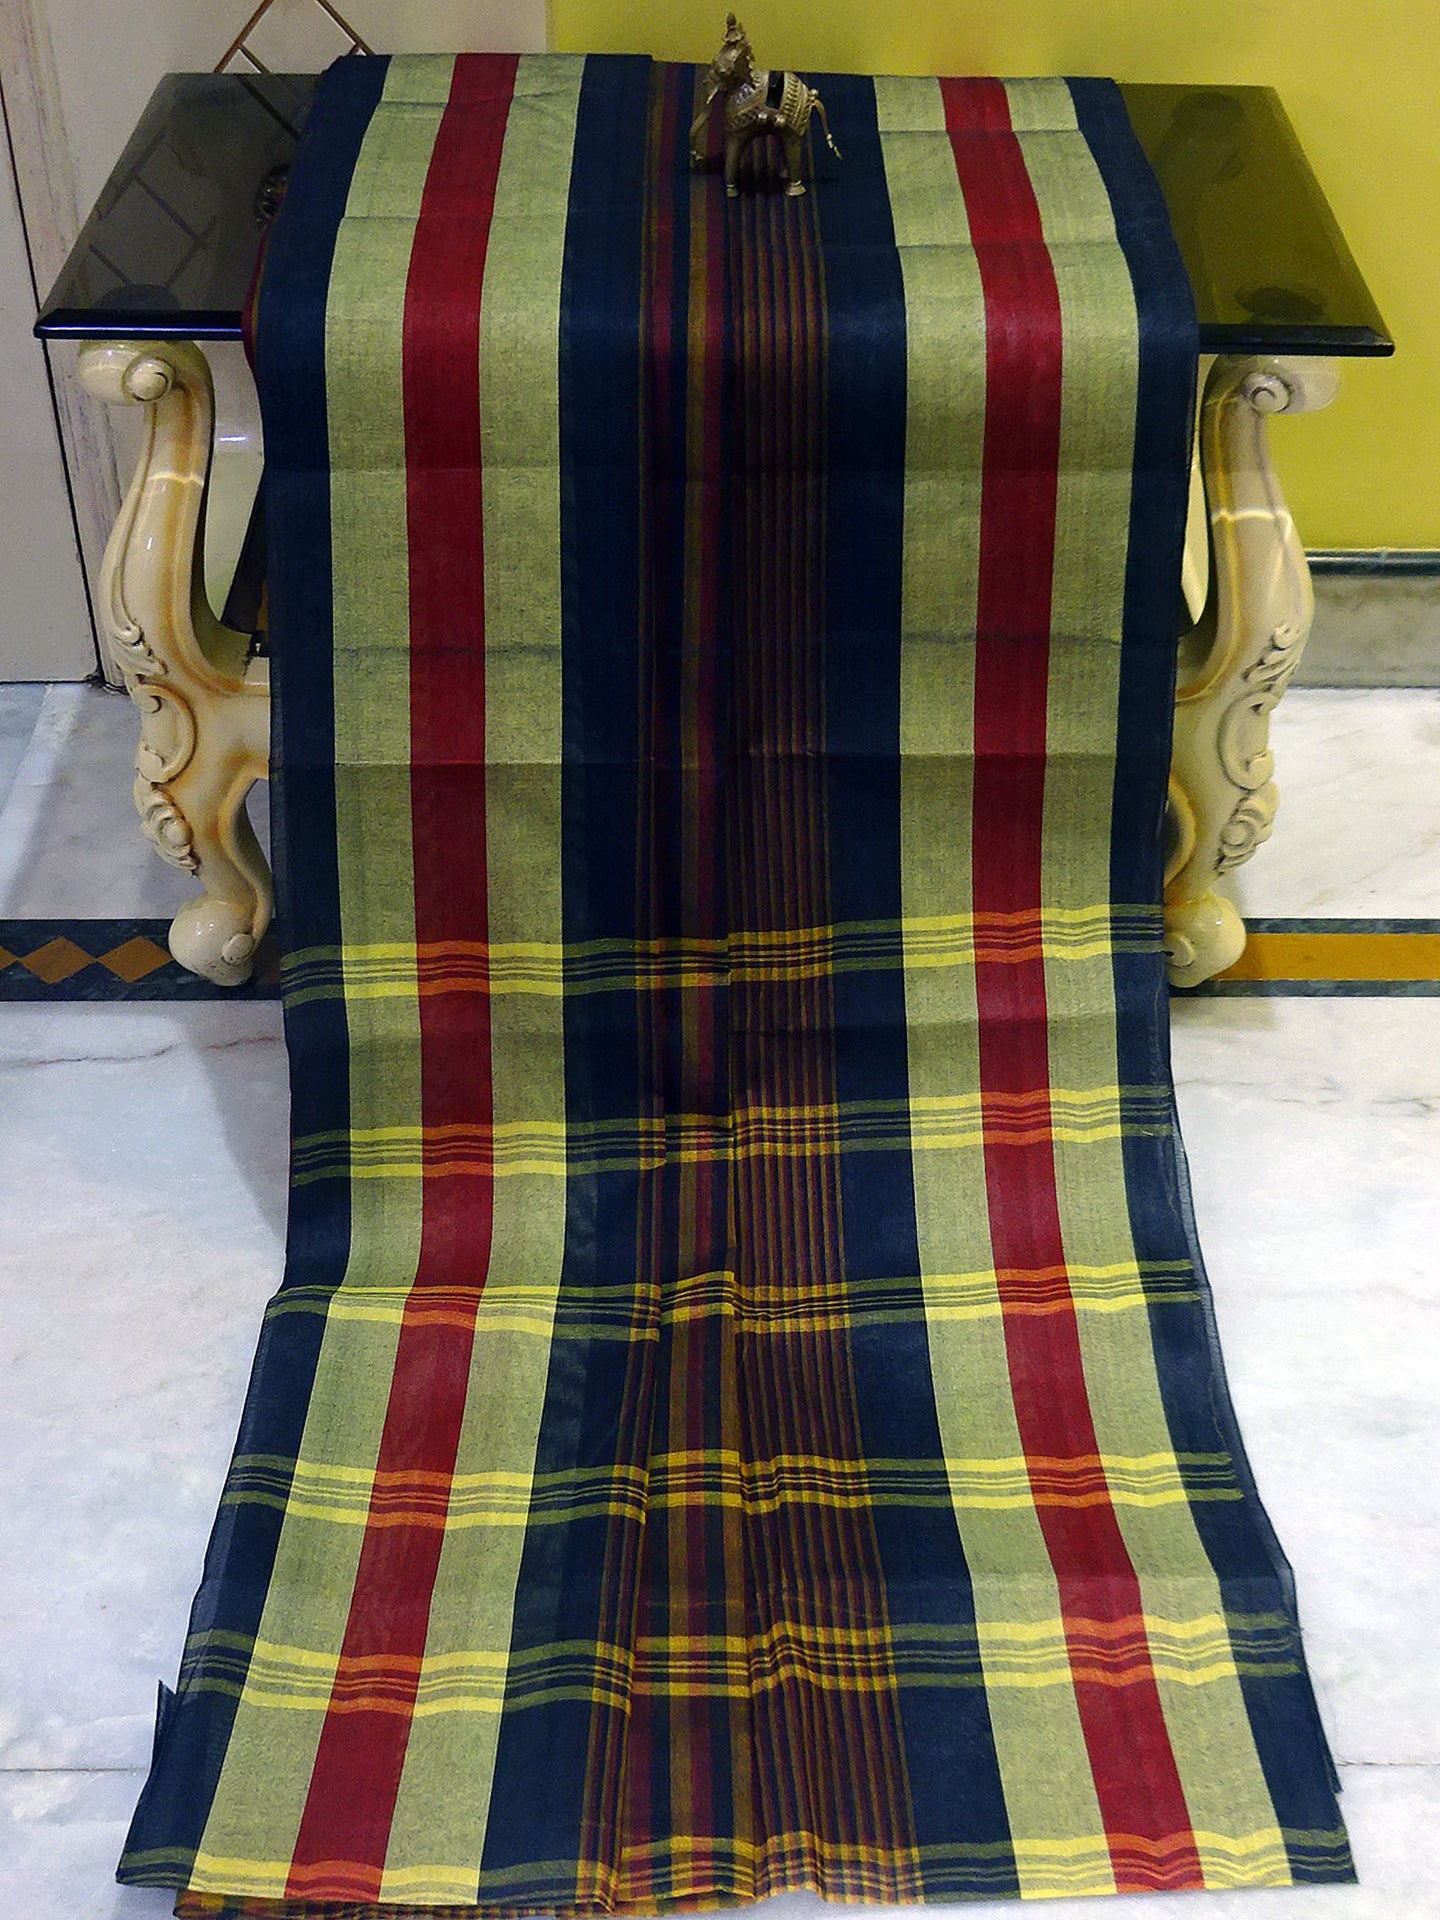 Bengal Handloom Cotton Saree in Multicolored Stripes